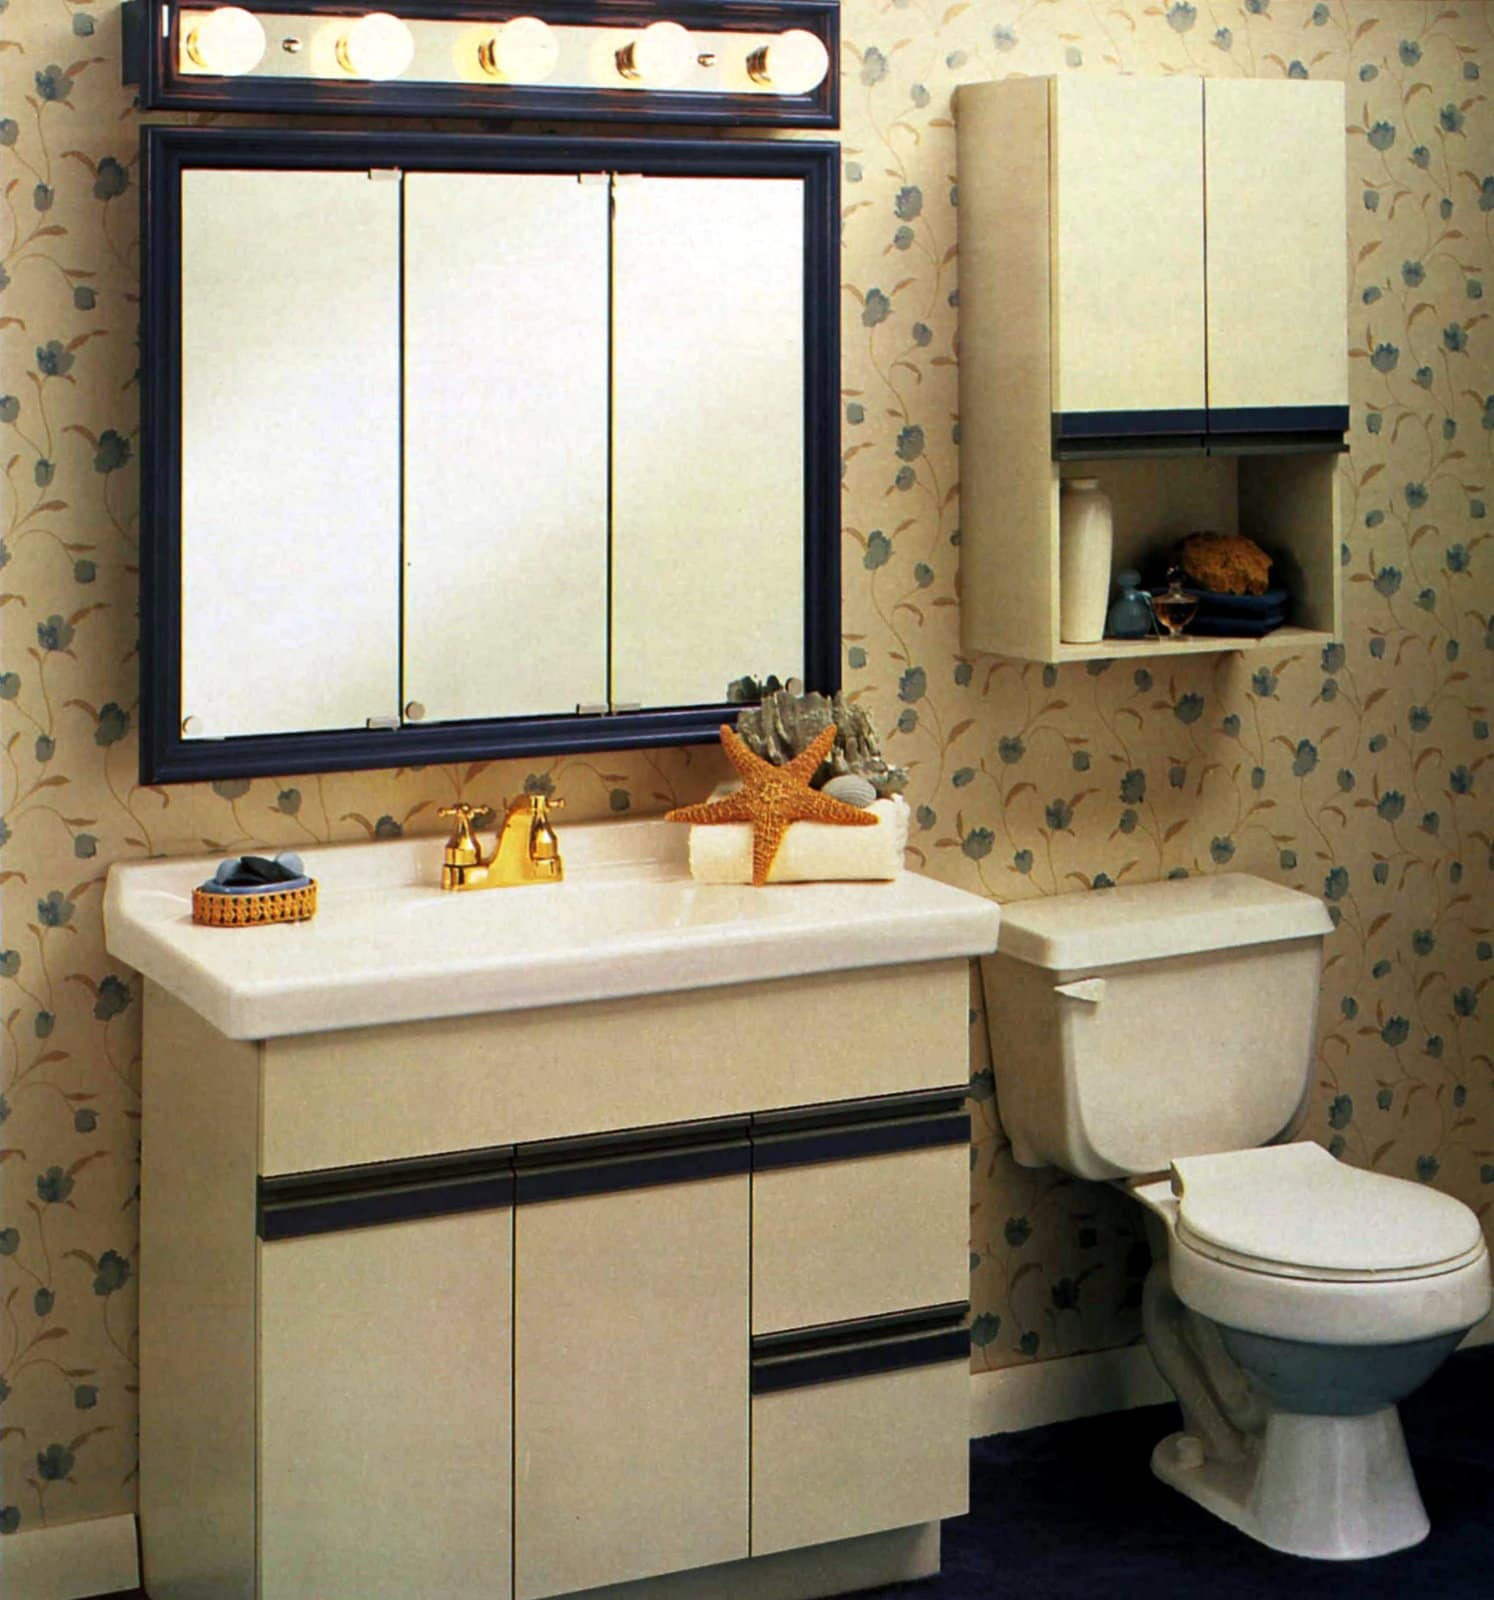 Super basic retro 80s bathroom cabinet and decor from 1988